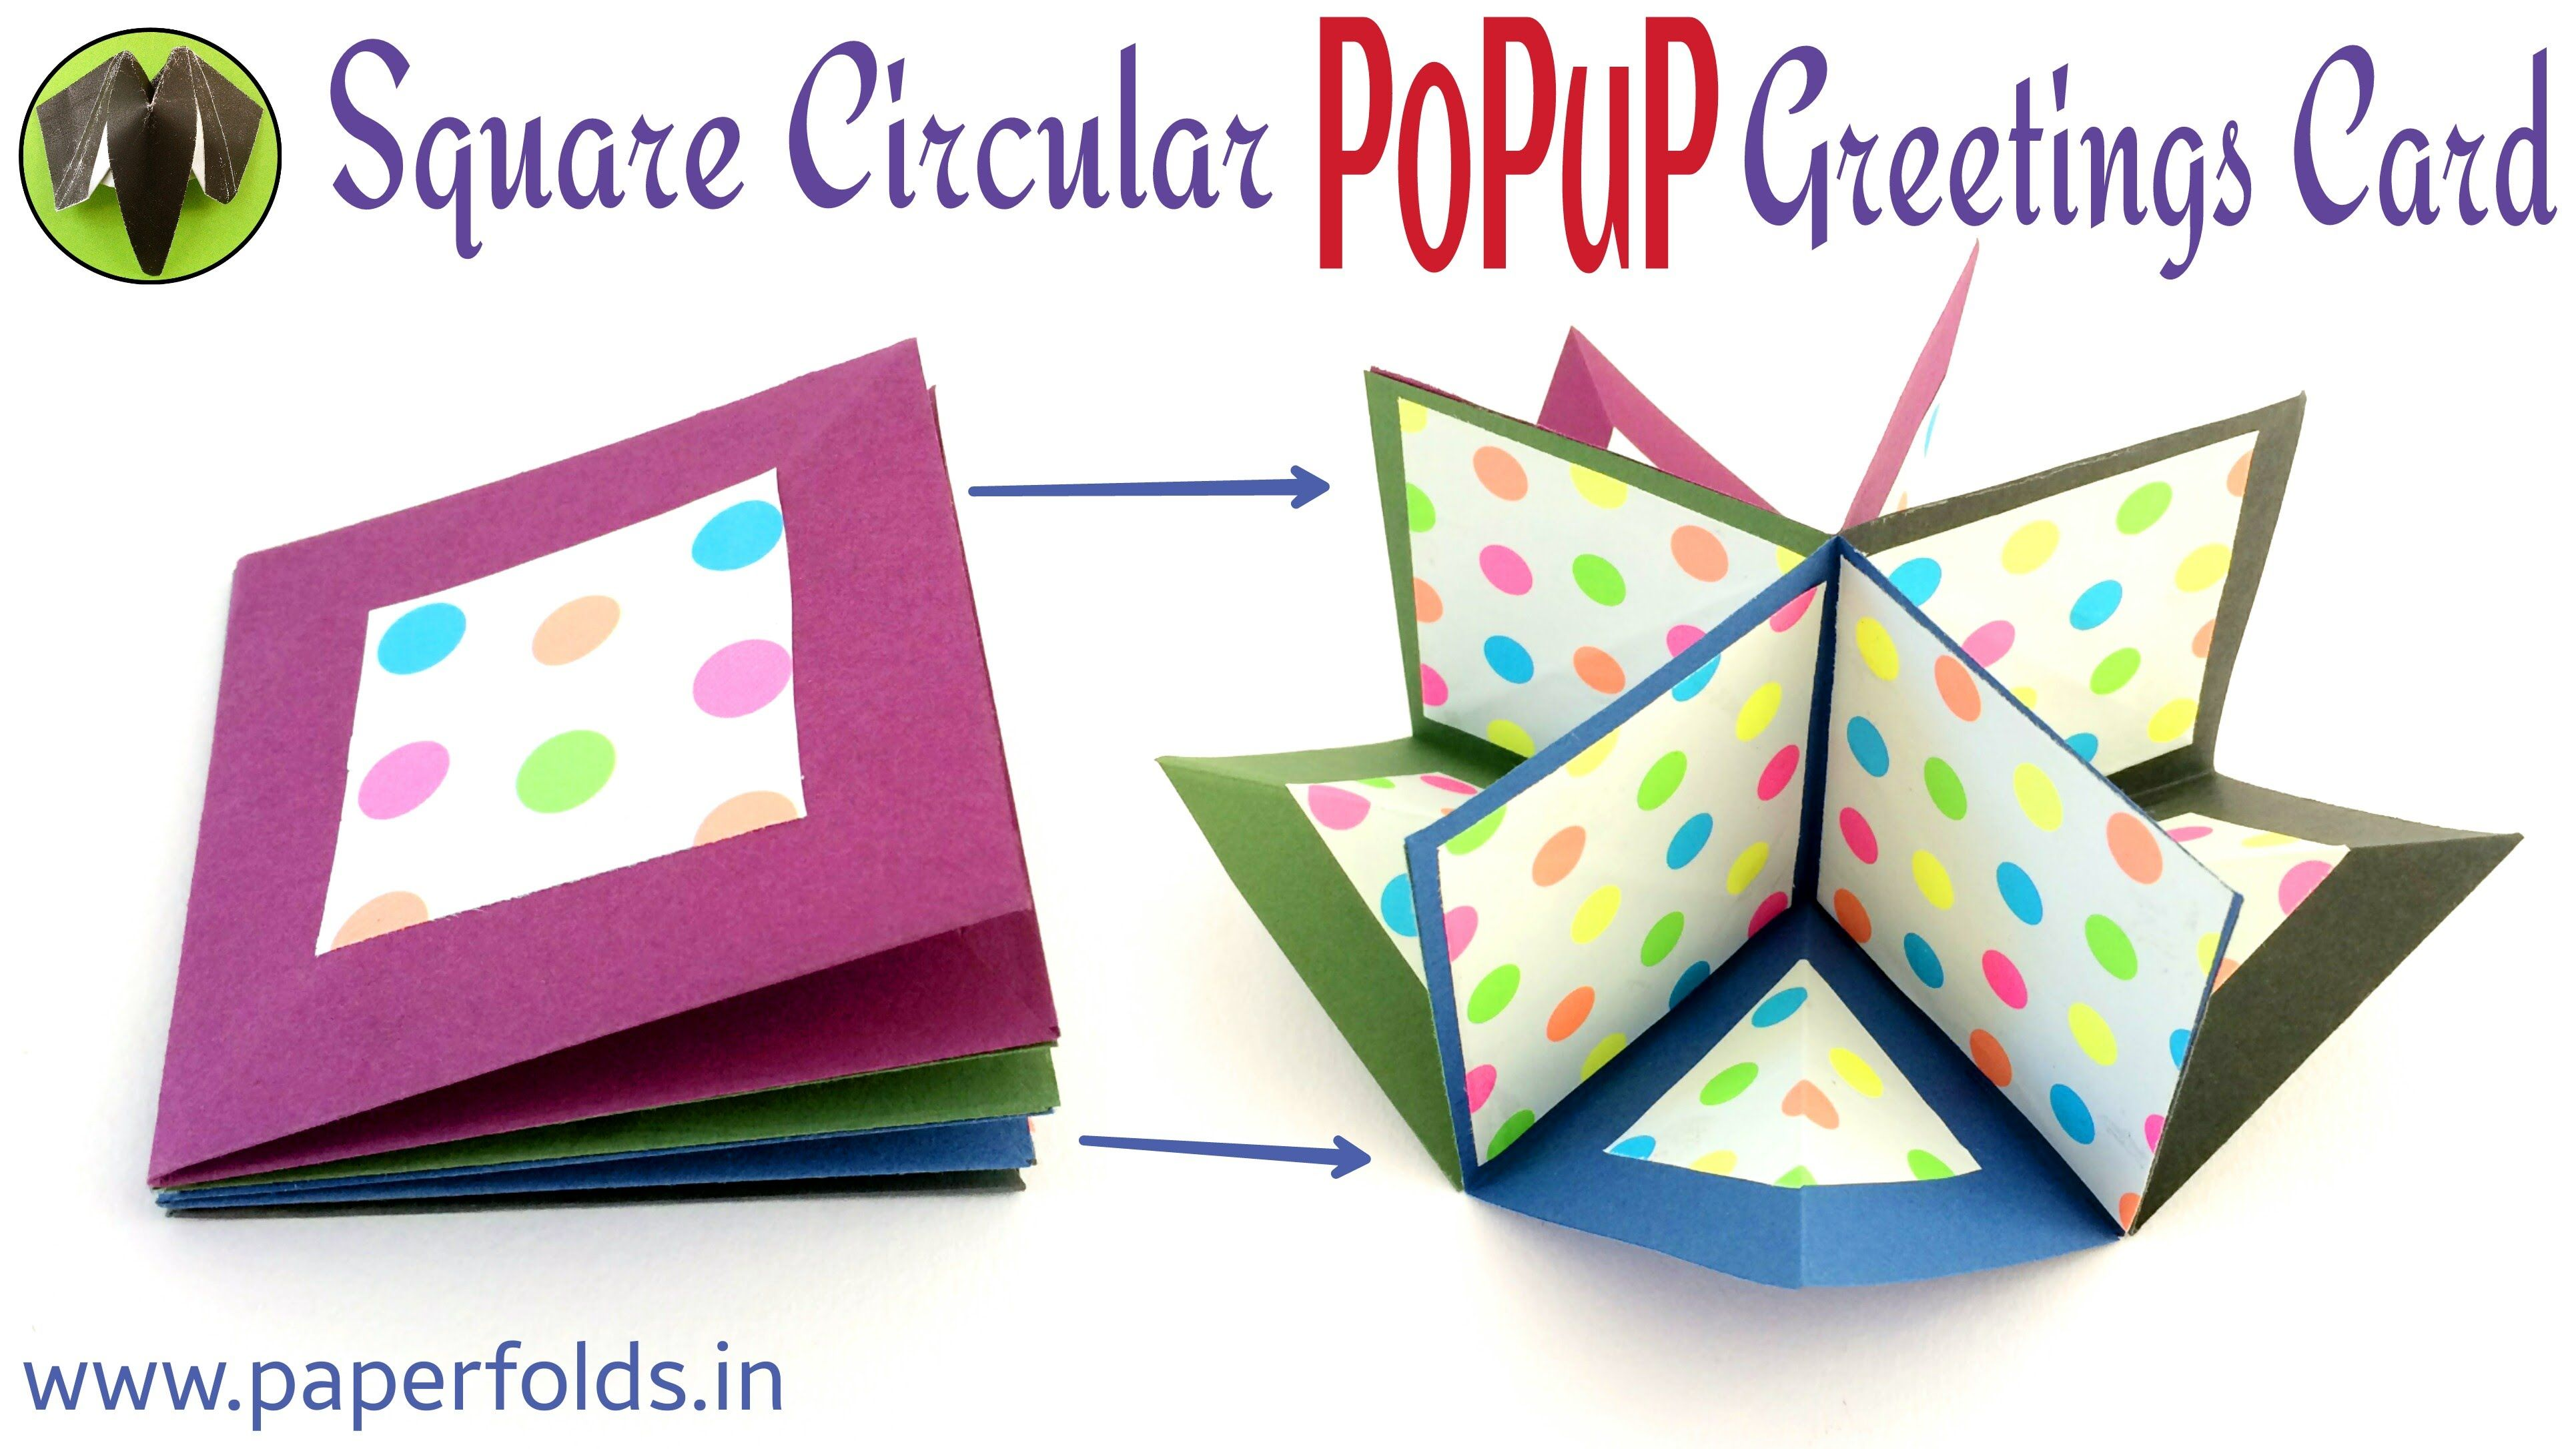 How to make a Square Circular Popup greeting card Paper craft – How to Make Paper Birthday Cards